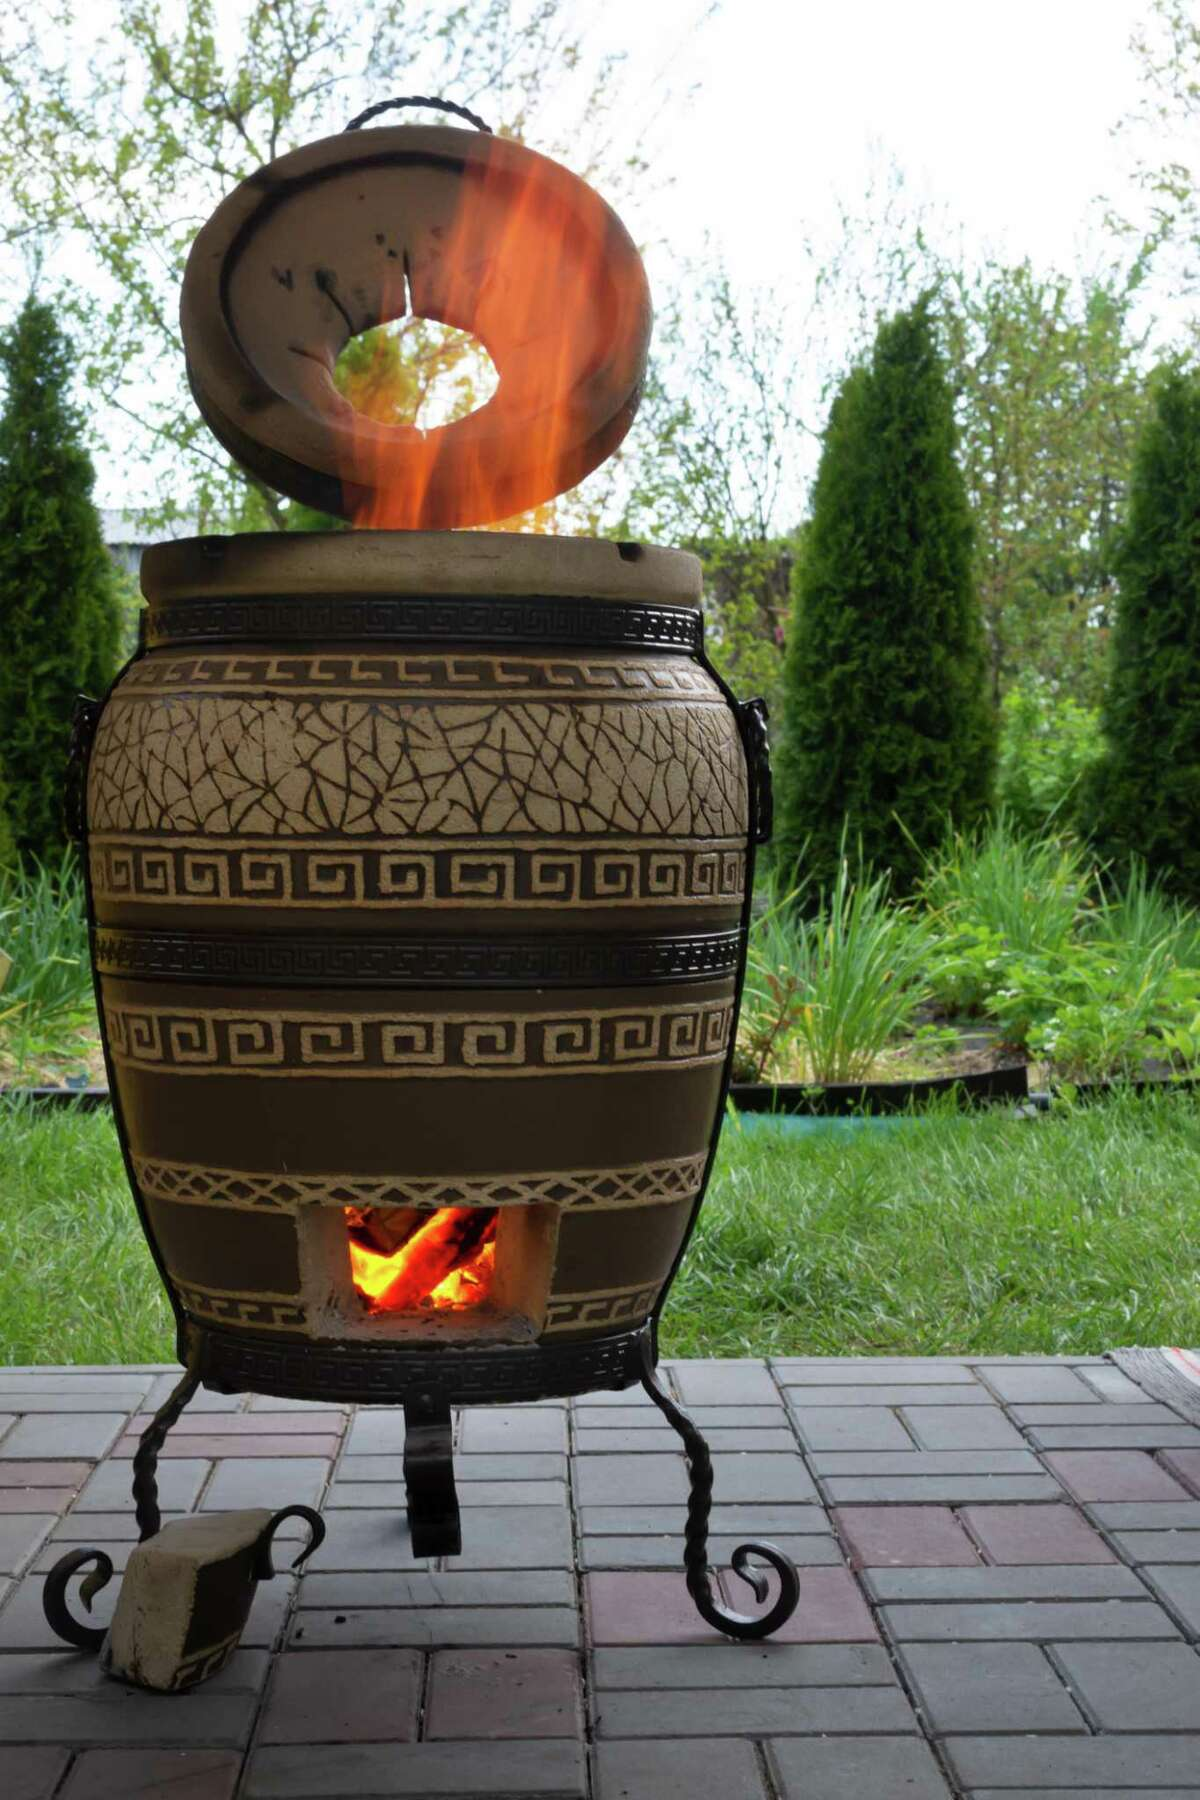 A tandoor is a cylindrical oven popular in Indian cooking. Typically made with clay or metal, tandoor ovens can easily get to temperatures that exceed 800 degrees with charcoal or firewood as the fuel. They date back more than 5,000 years to what's now the Punjab region of India.